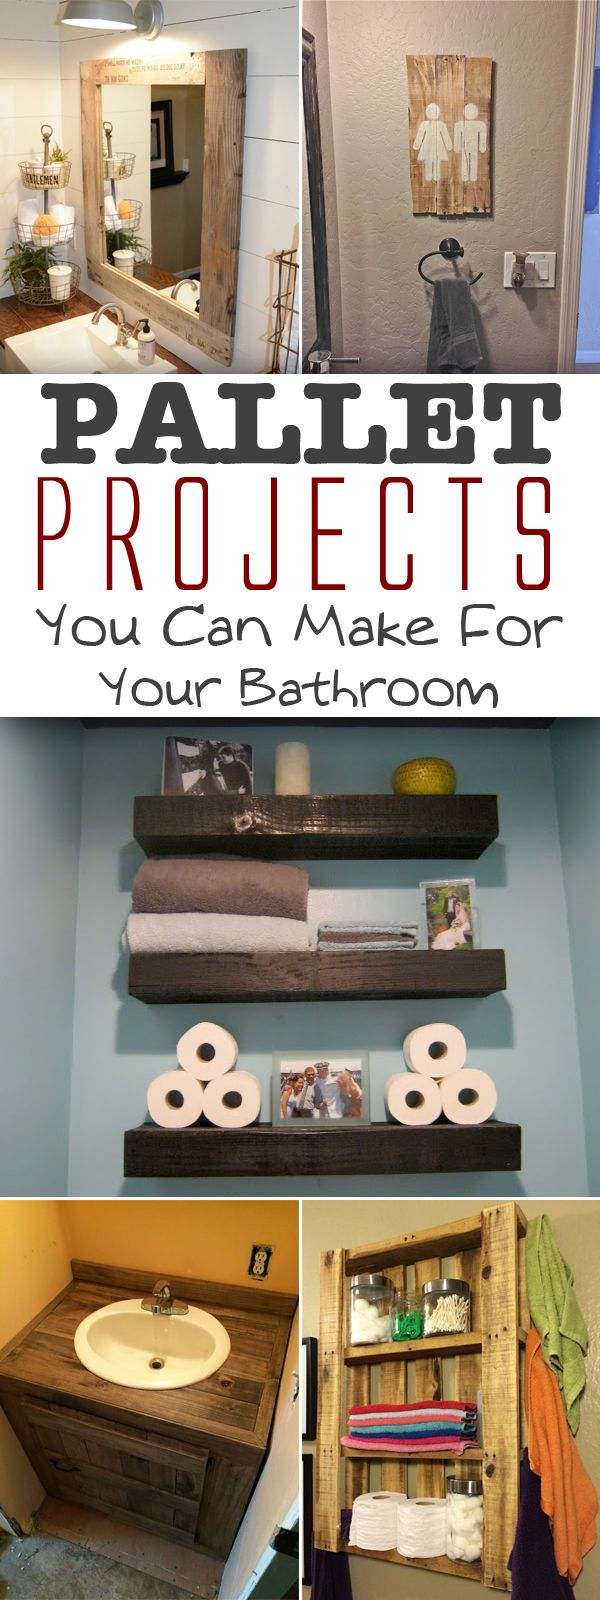 Do It Yourself Home Design: 10 Pallet Projects You Can Make For Your Bathroom